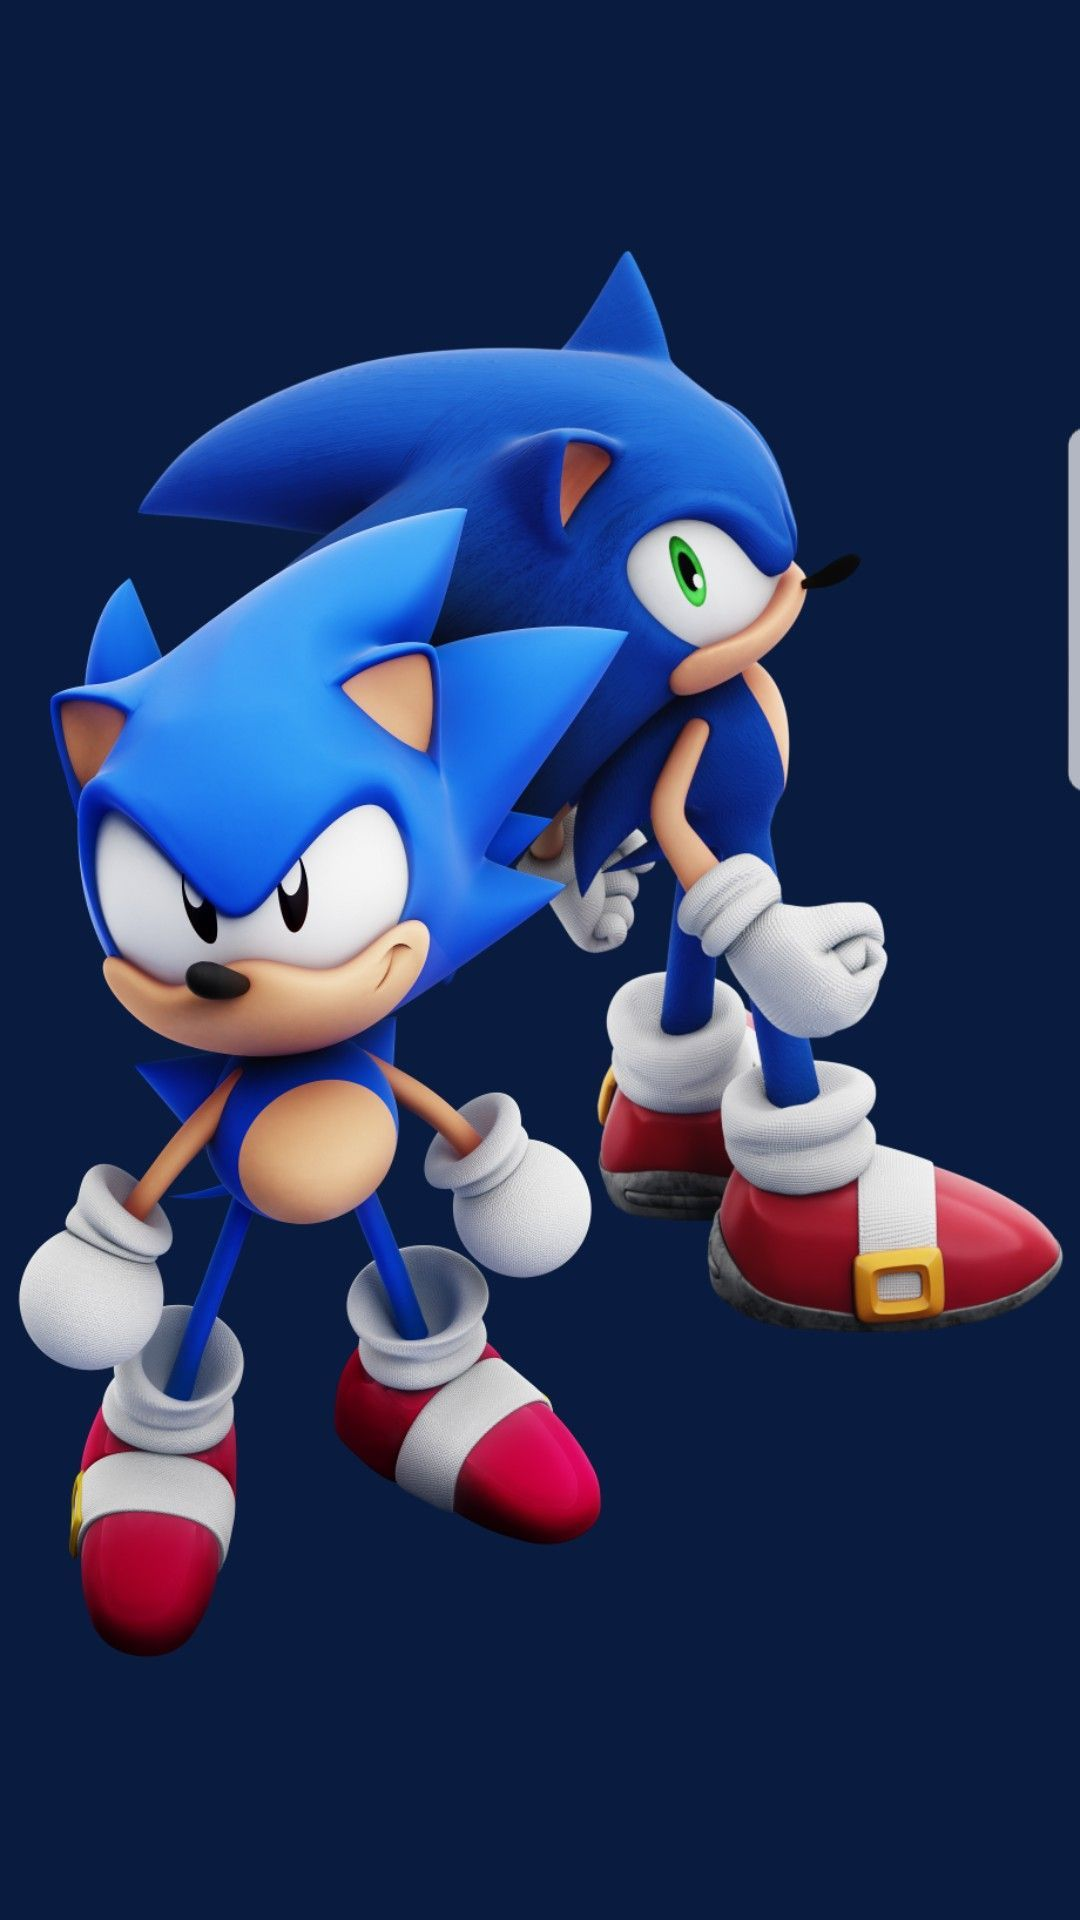 Epic Sonic Background em 2020 Personagens de videogame